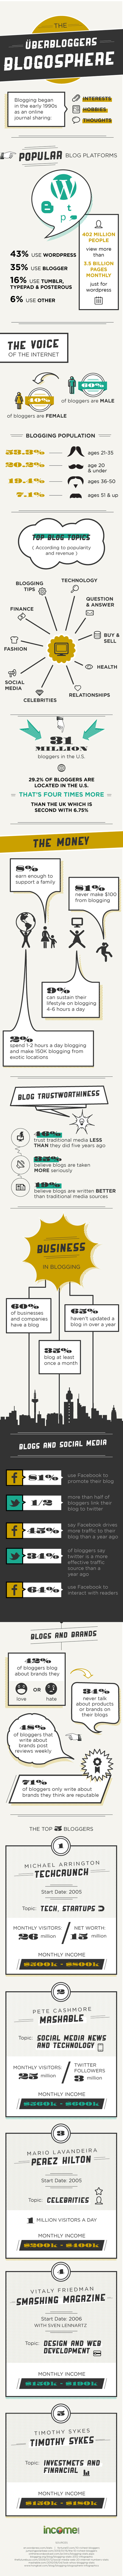 10 Top Hottest Blog Topics by Popularity and Revenue